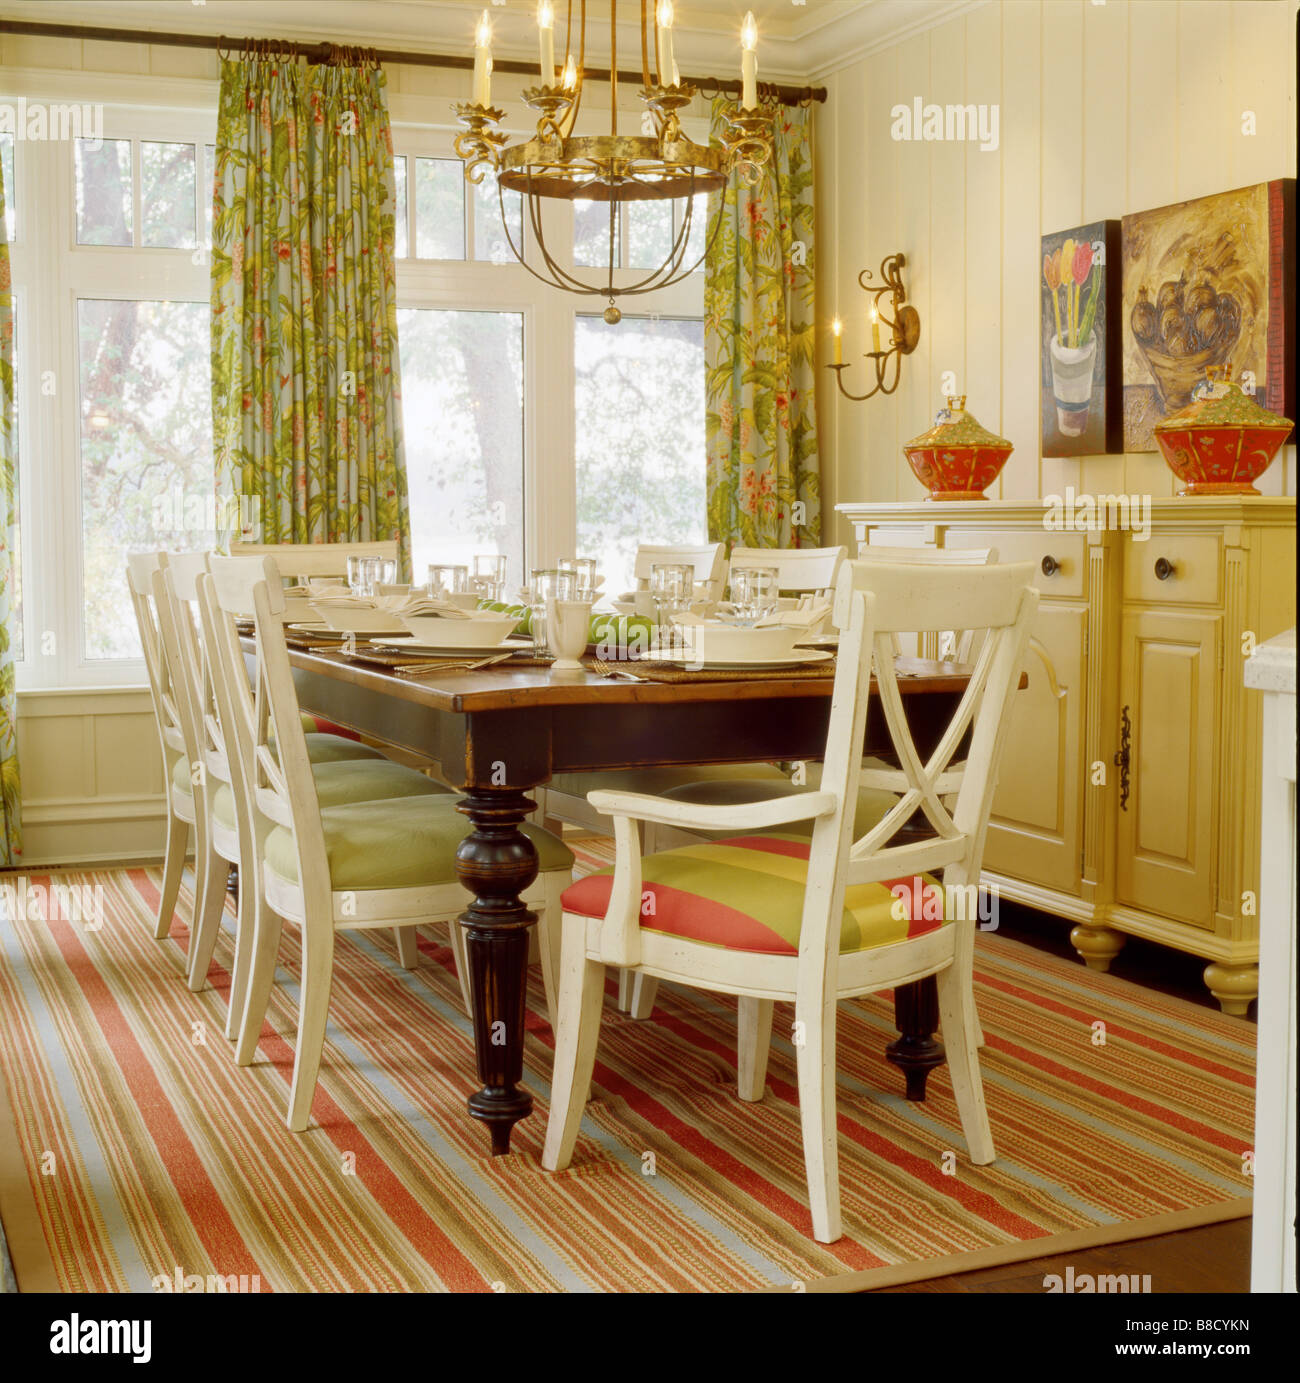 Country Style Breakfast Room Set Table Stock Photo: 22412761 ...